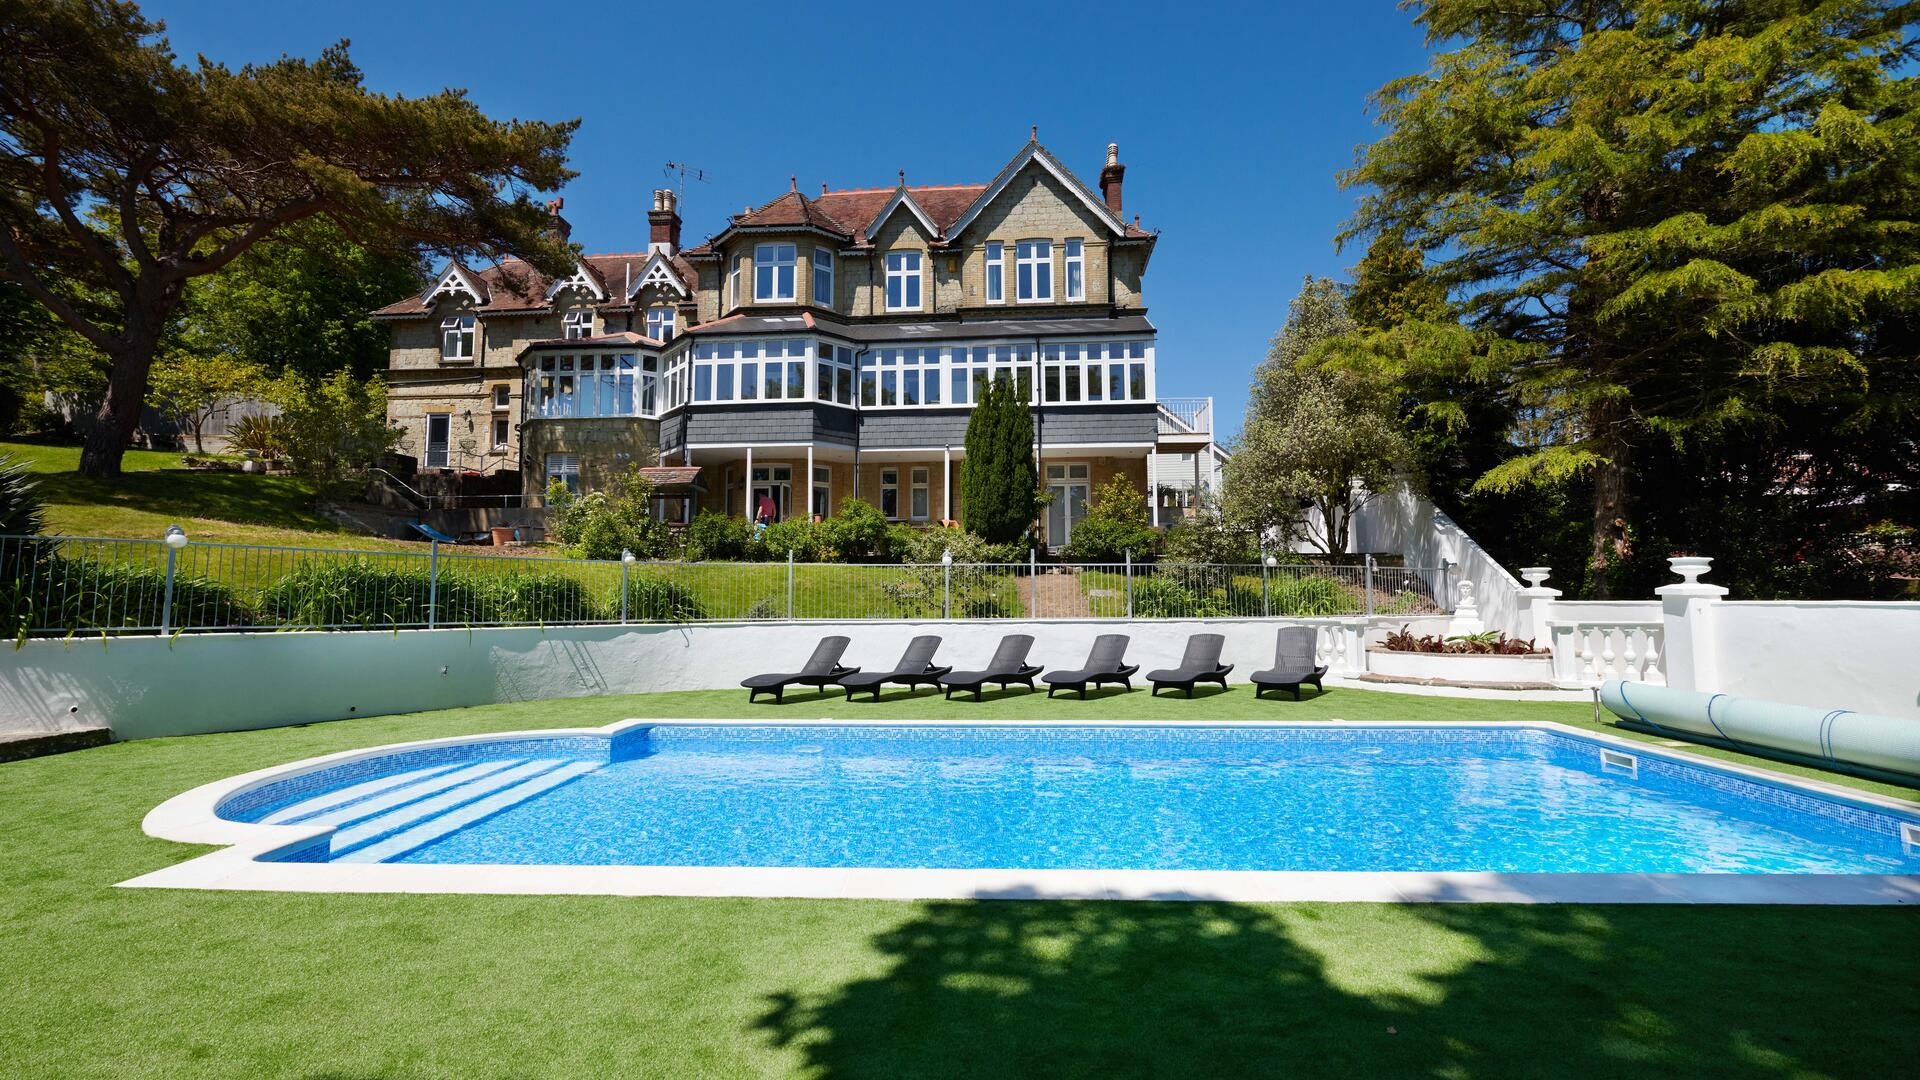 Child friendly holiday apartments, Shanklin Isle of Wight - DBLC